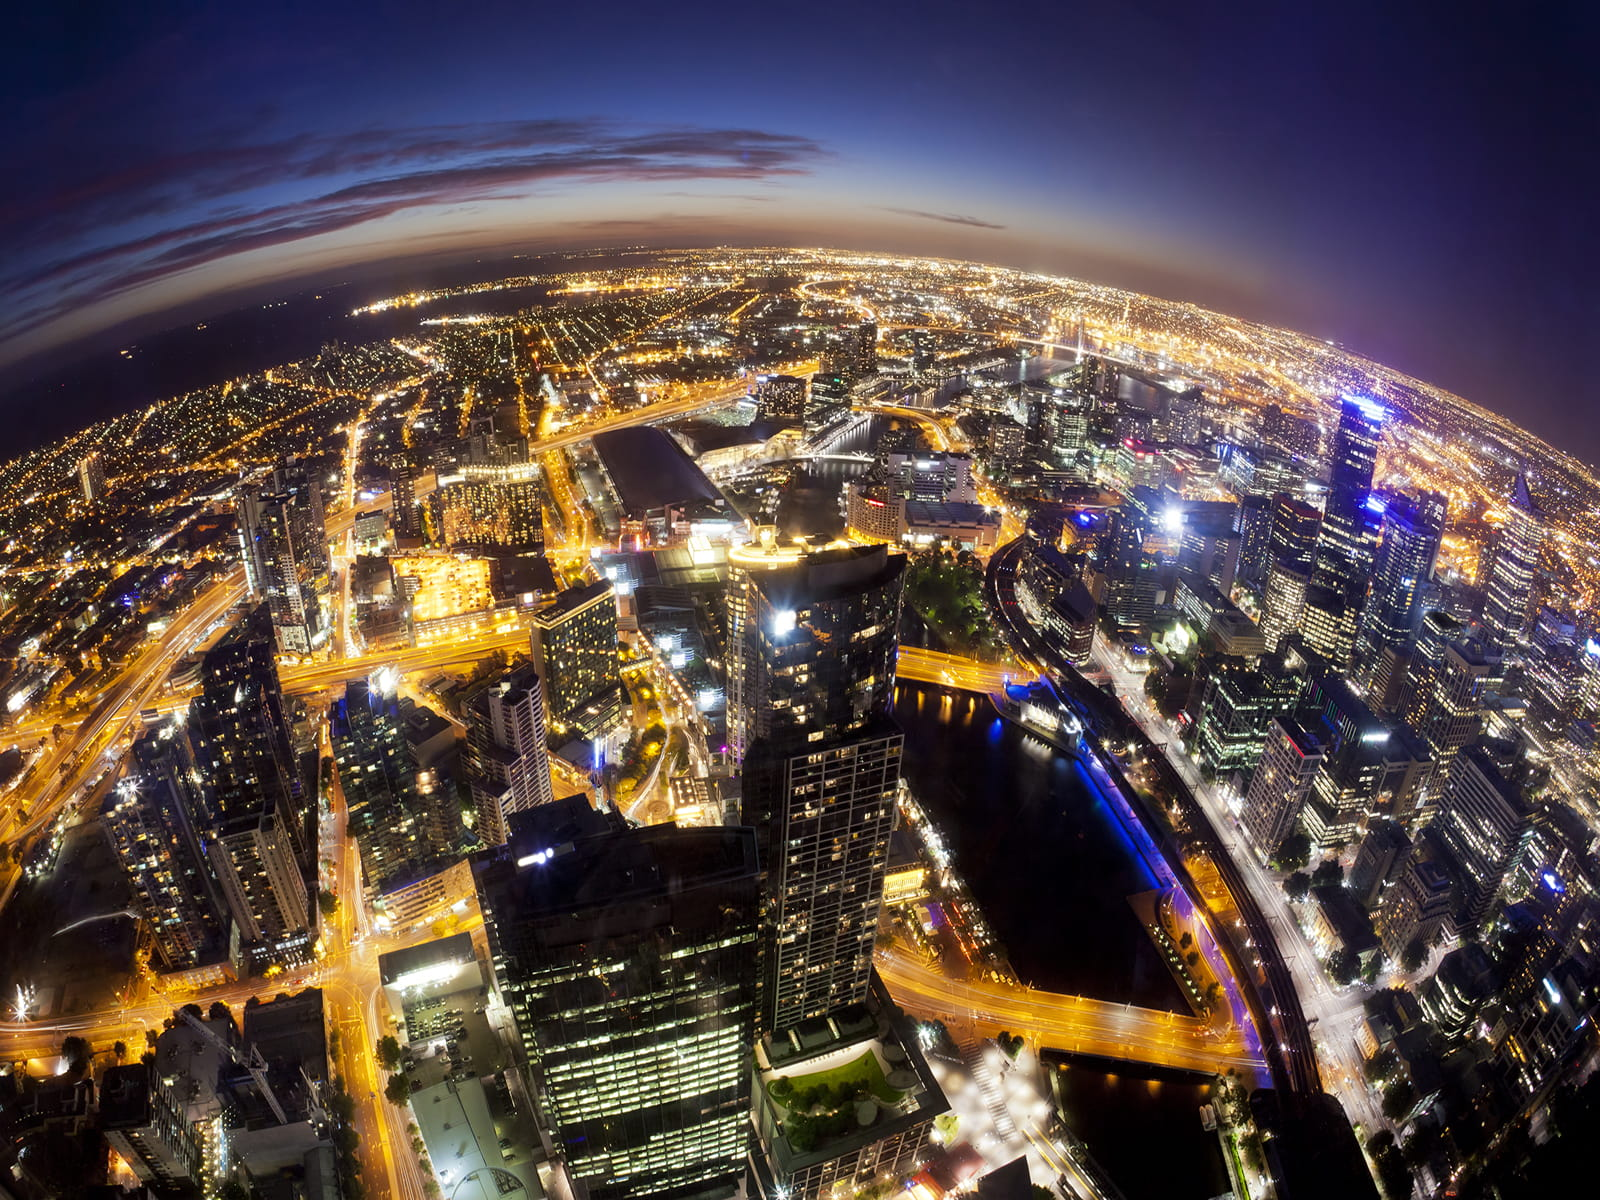 Melbourne at night, fisheye view of city lights